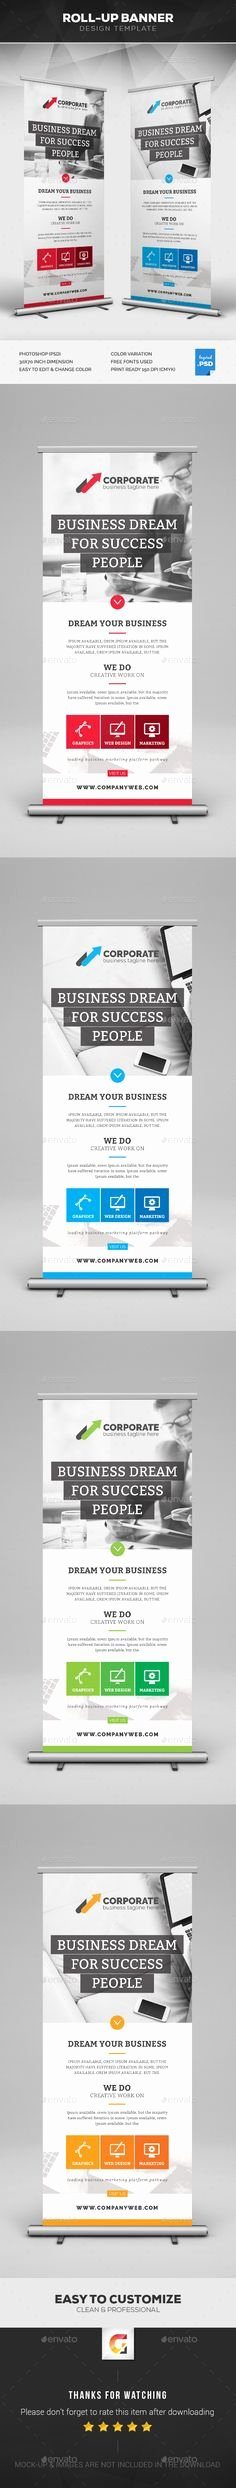 Pop Up Banner Template Awesome 1000 Images About Pop Up Banner On Pinterest